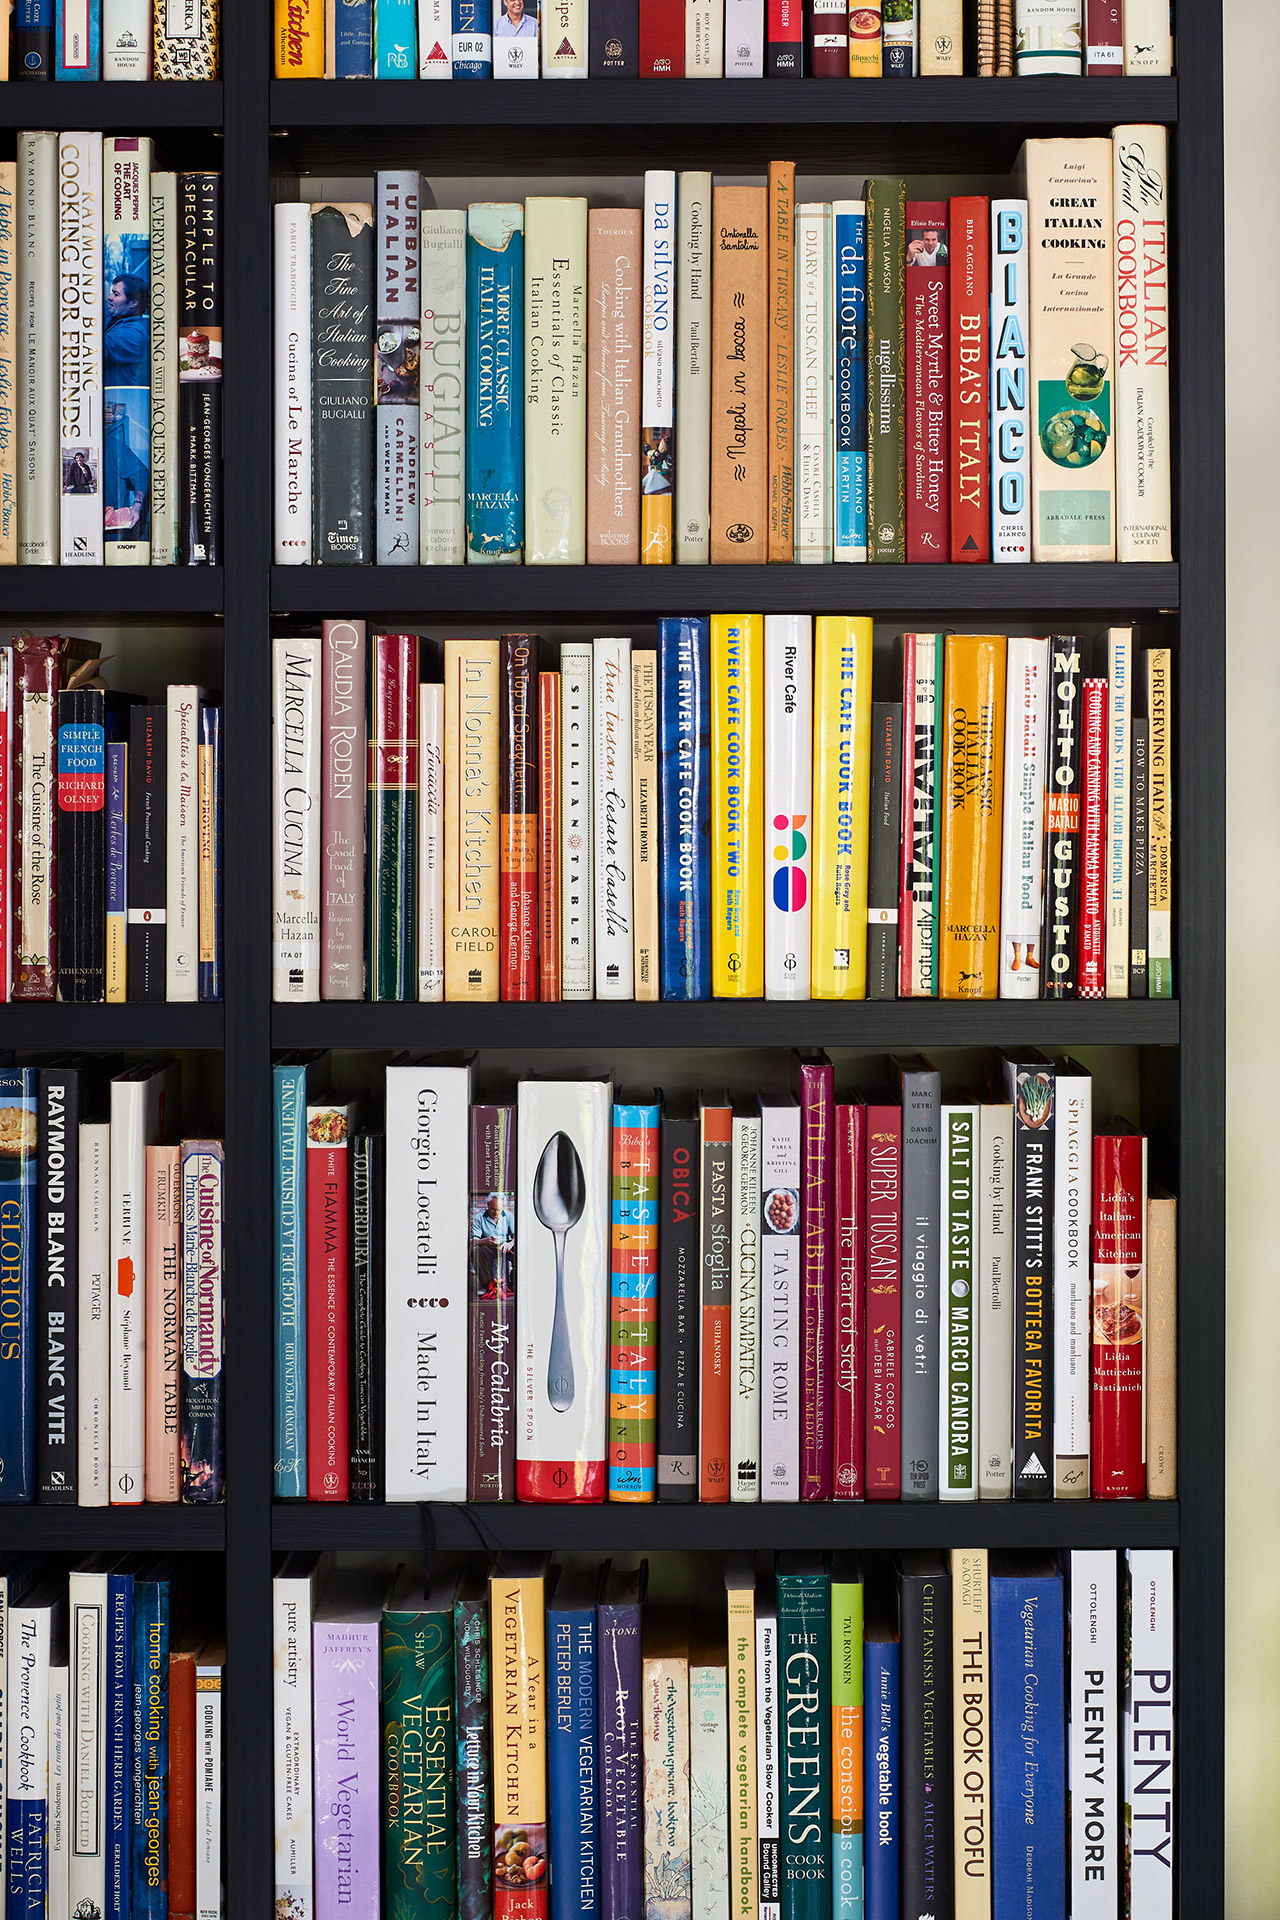 close up view cookbook collection shelving